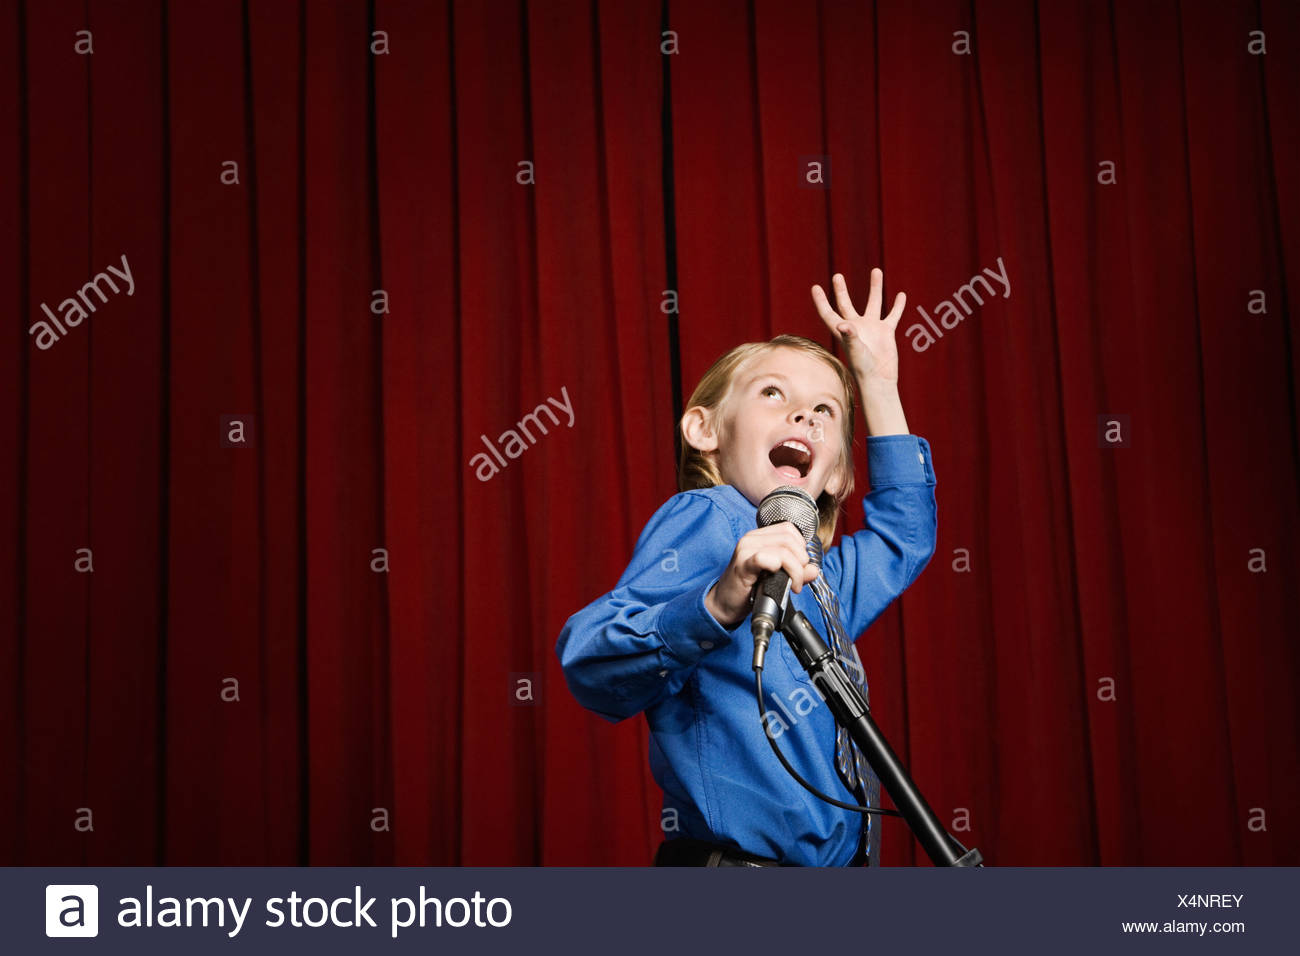 Boy singing on stage - Stock Image